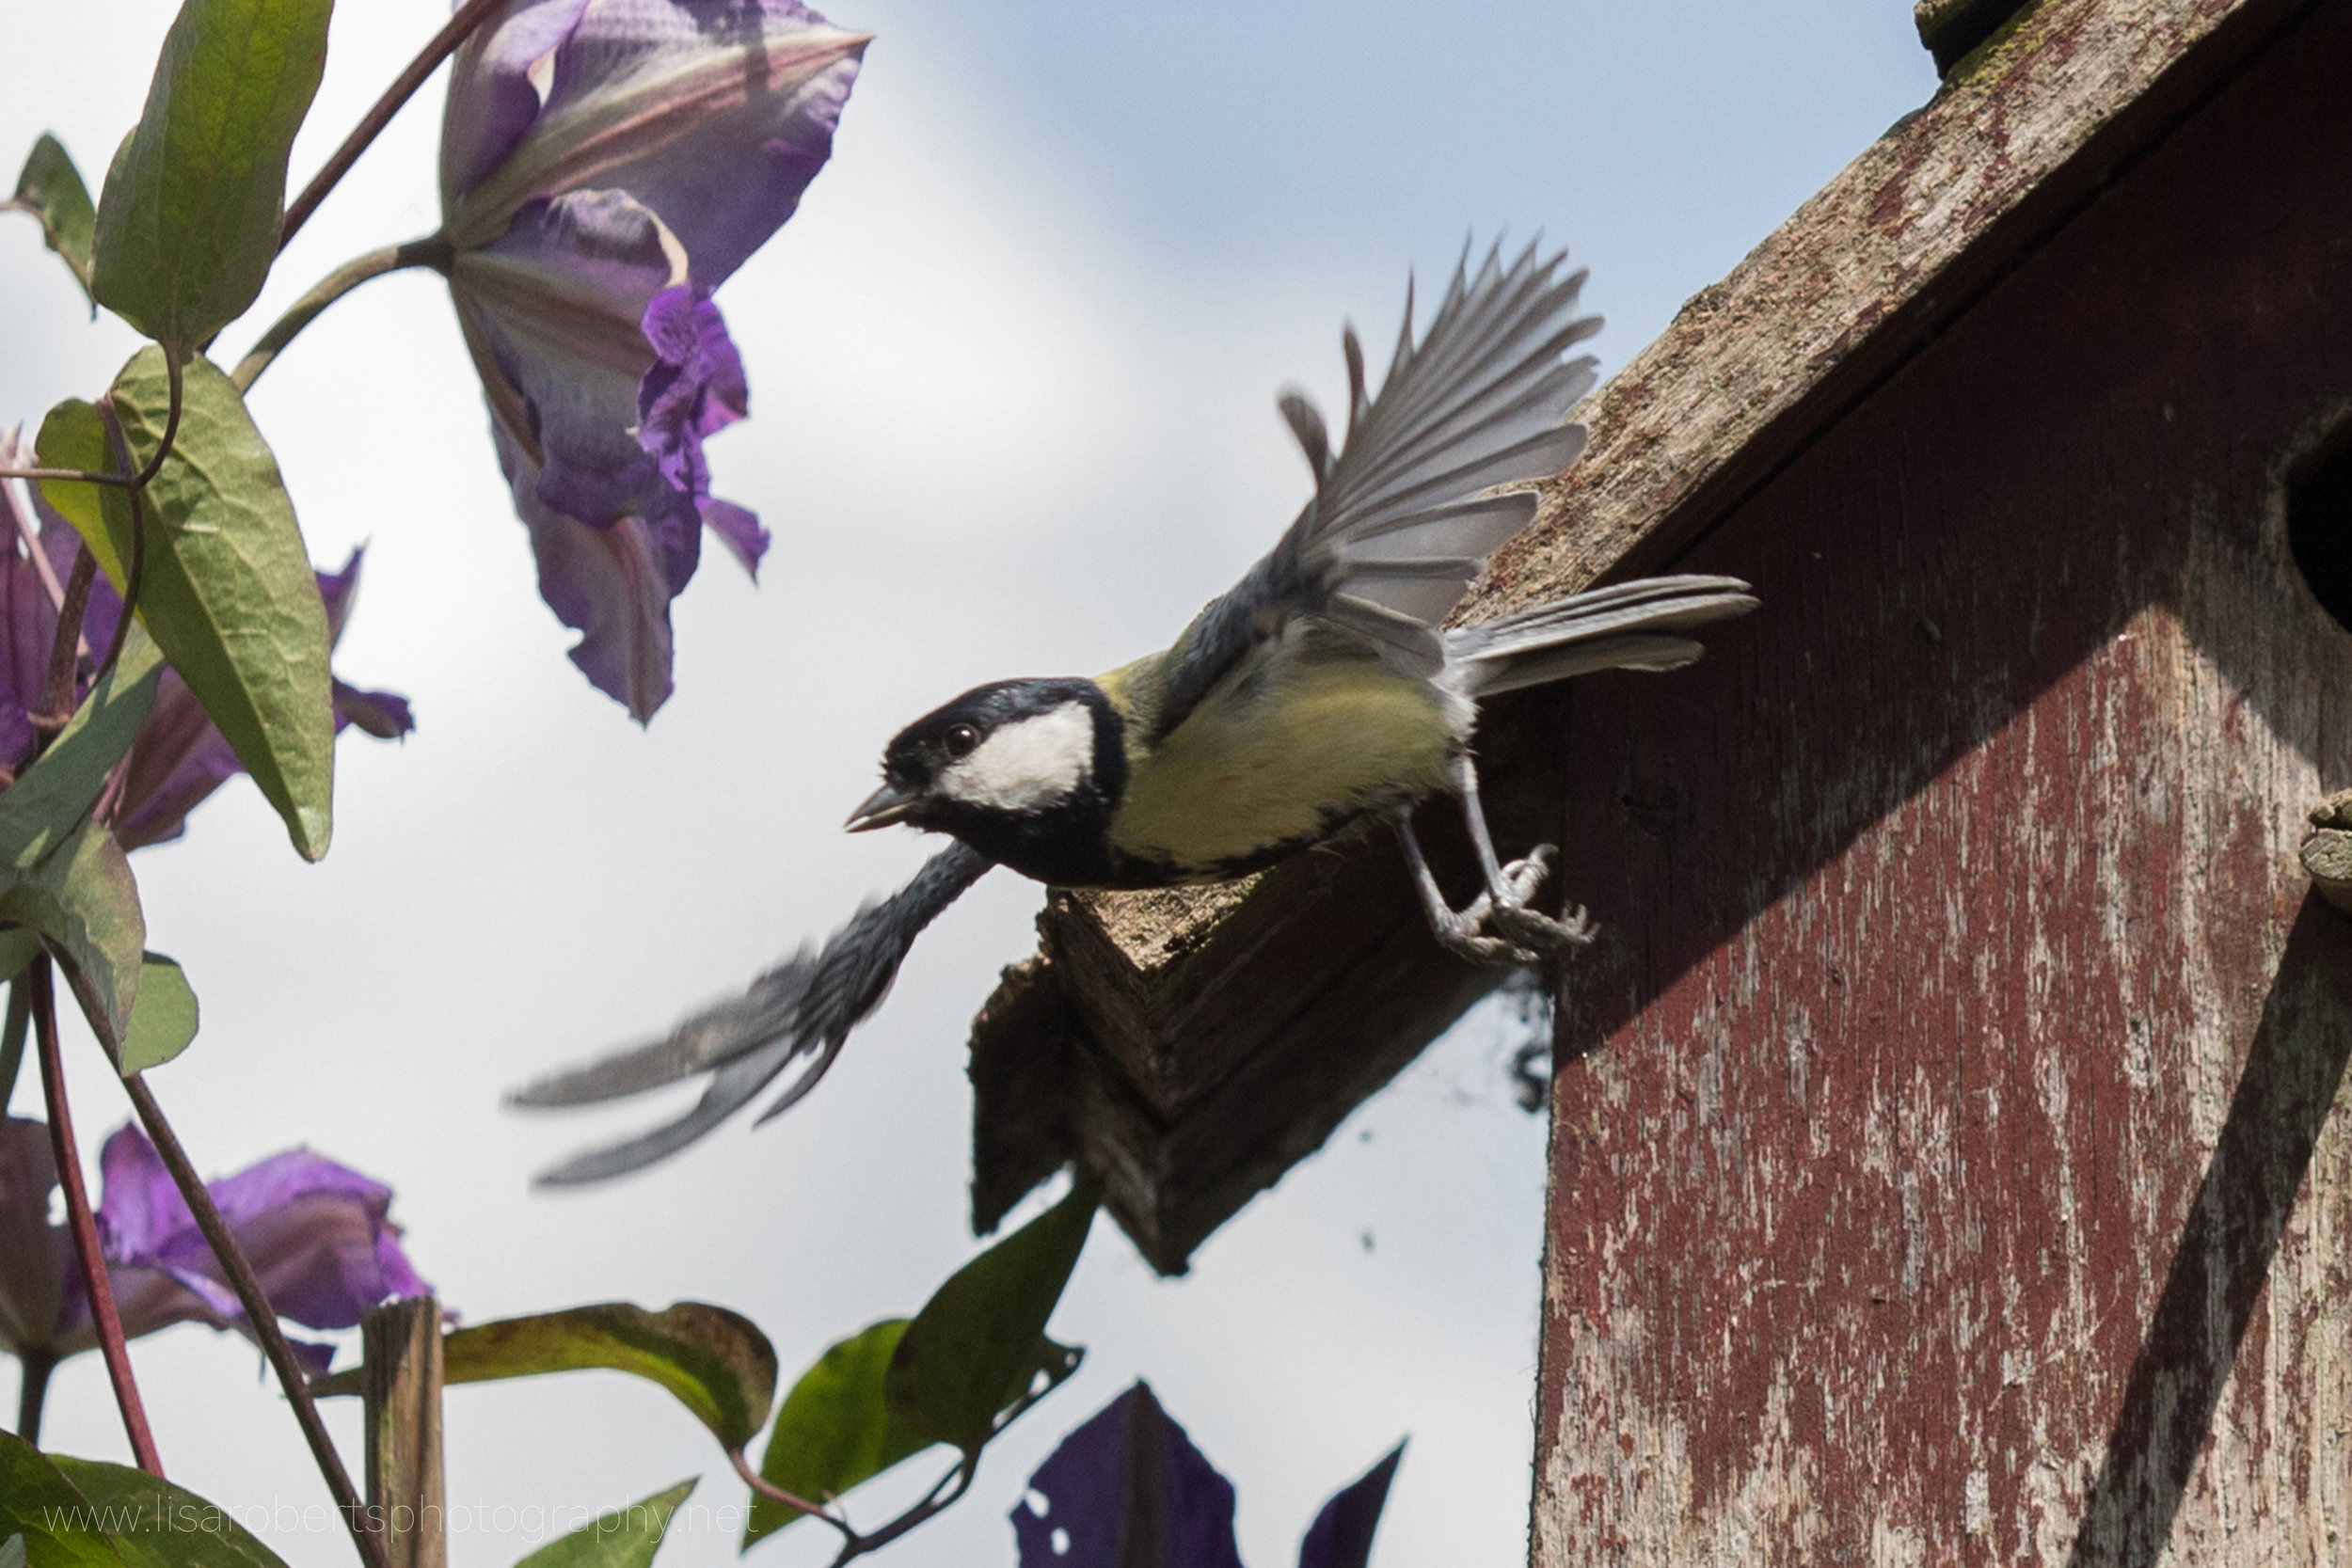 Male Great Tit in flight